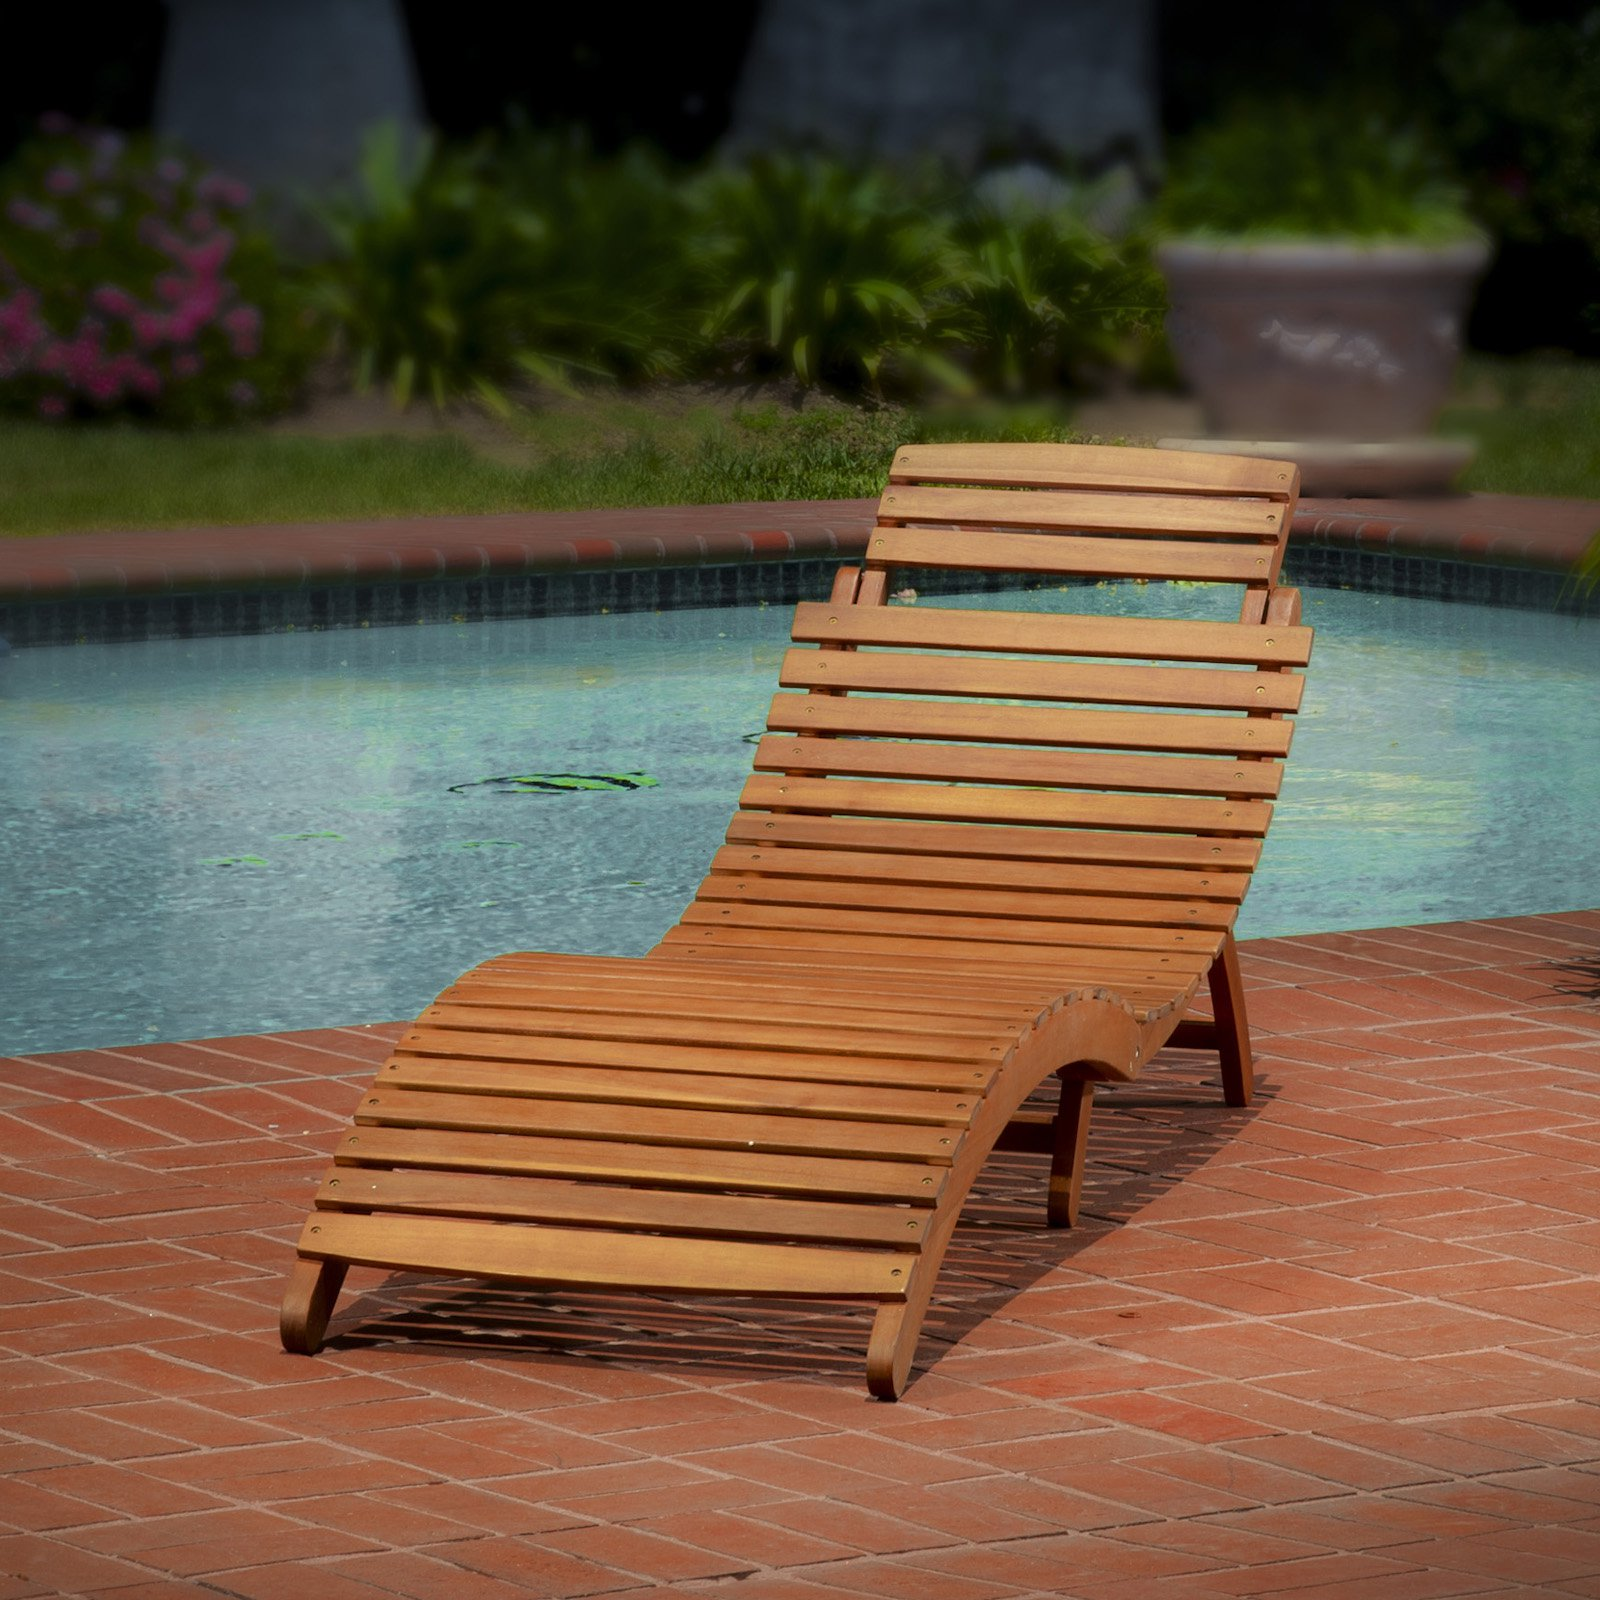 Lahaina Wood Outdoor Chaise Lounge : chaise lounge wood - Sectionals, Sofas & Couches